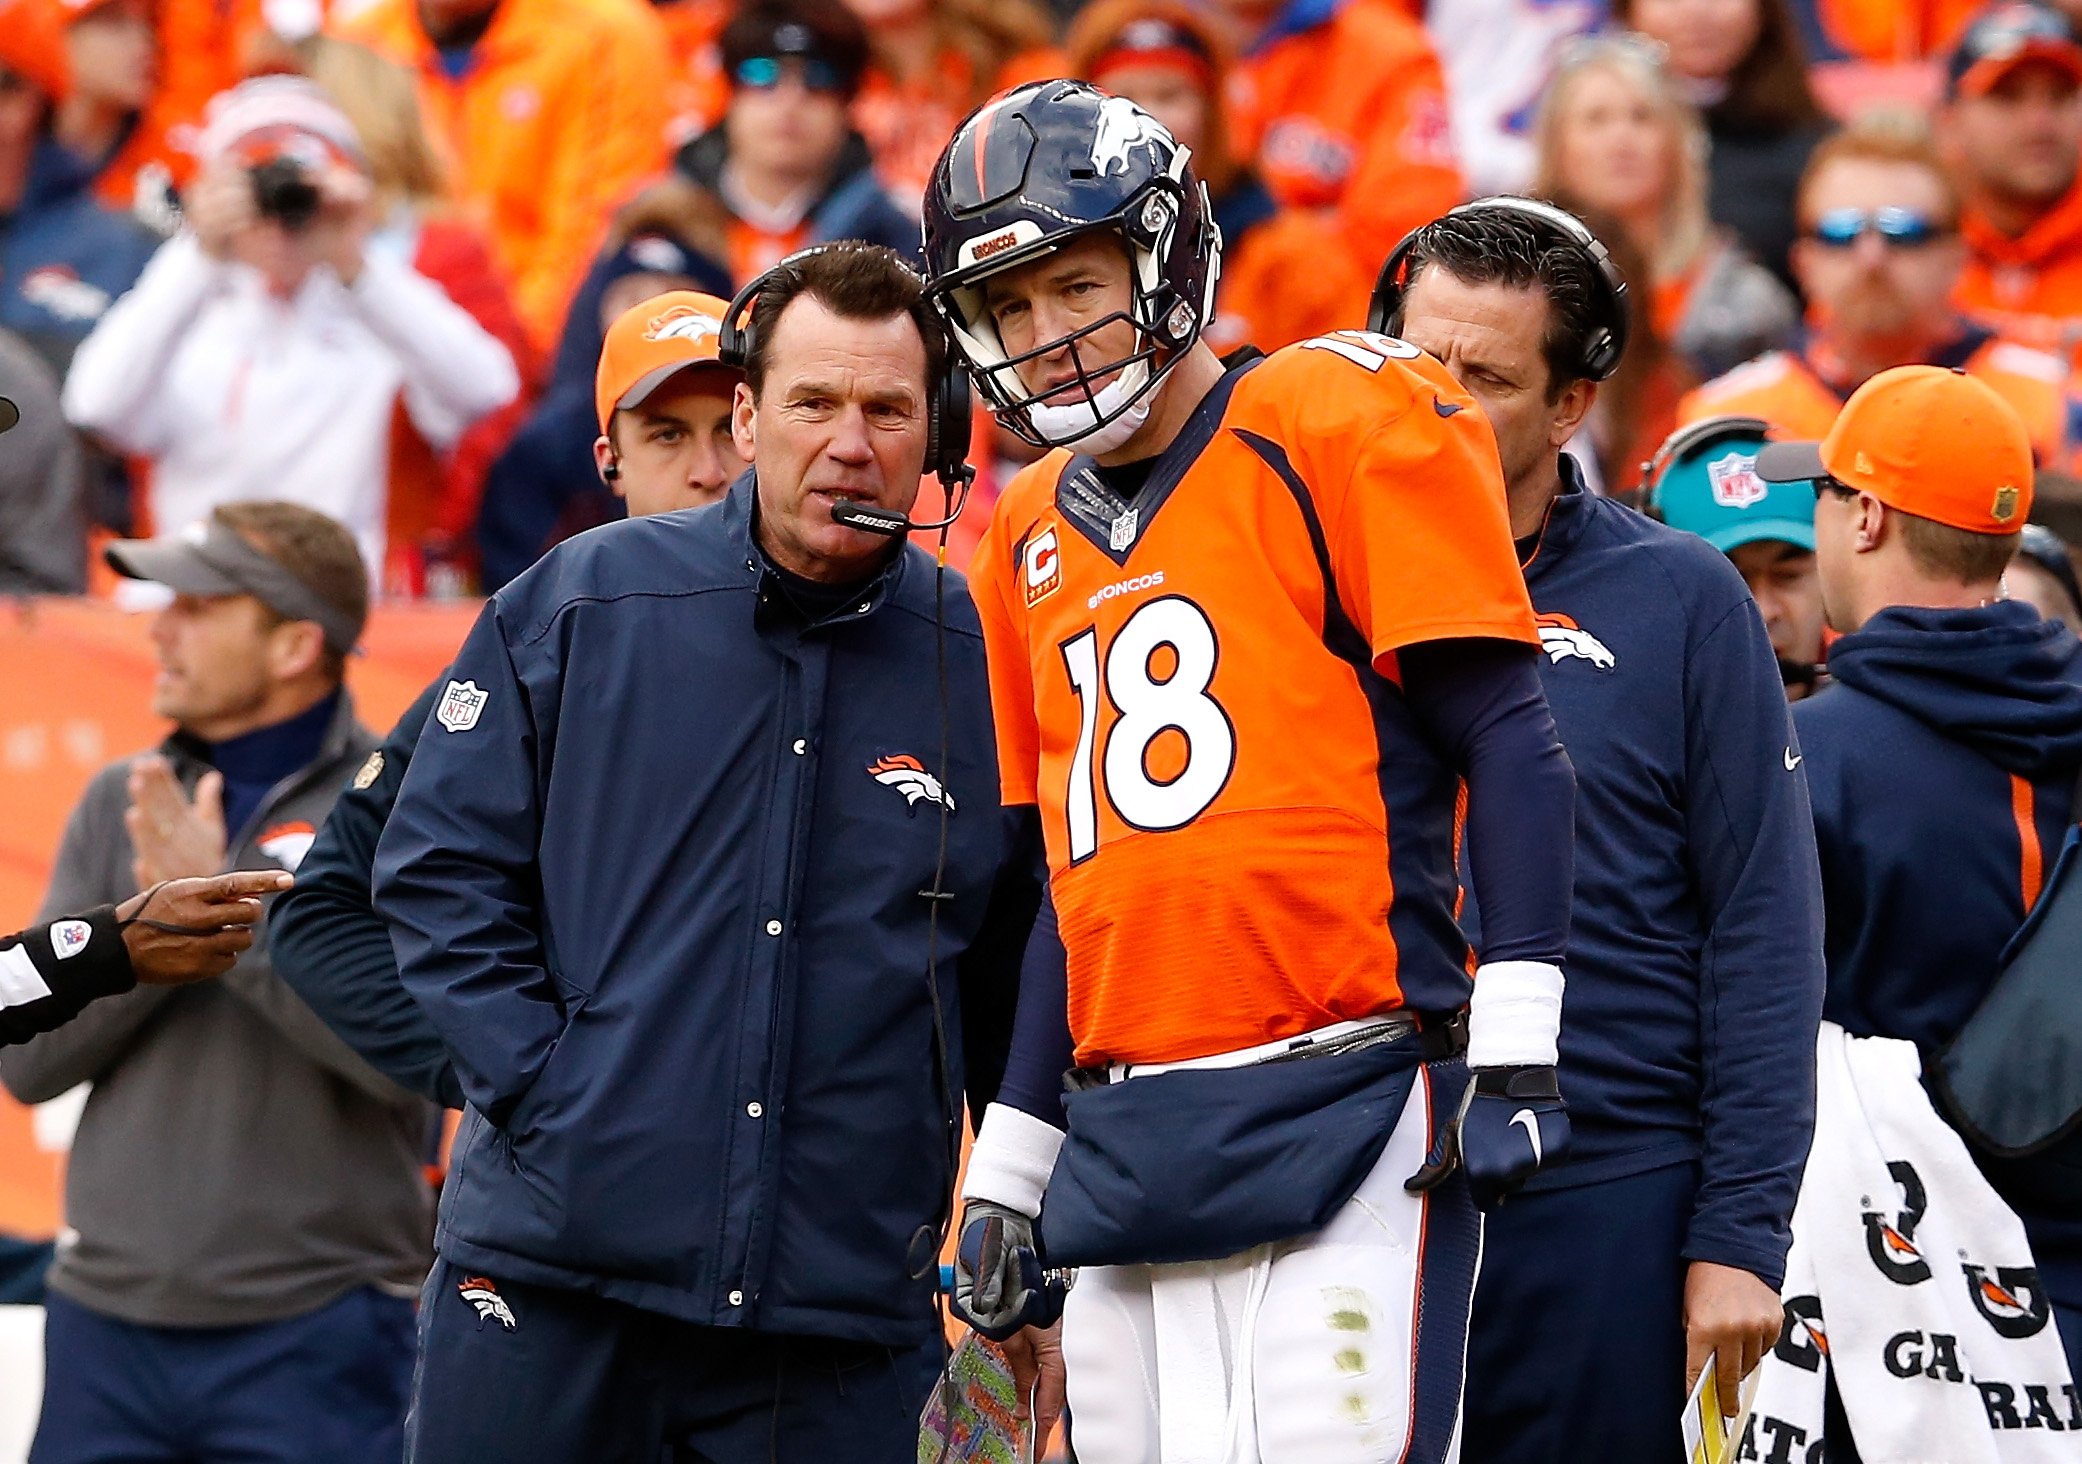 Gary Kubiak of the Denver Broncos speaks to Peyton Manning #18 in the first half against the New England Patriots in the AFC Championship game at Sports Authority Field at Mile High on January 24, 2016 in Denver, Colorado. (Photo by Christian Petersen/Getty Images)